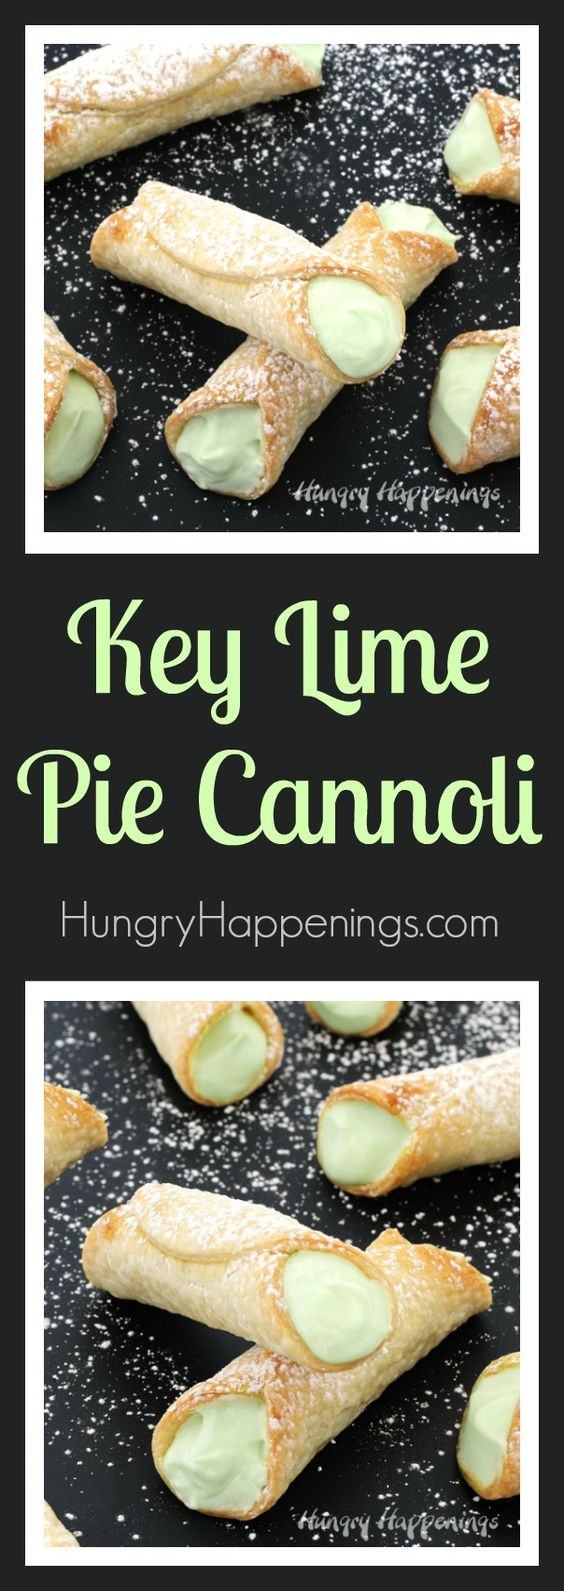 Key Lime Pie Cannoli - a simple 4-ingredient summer